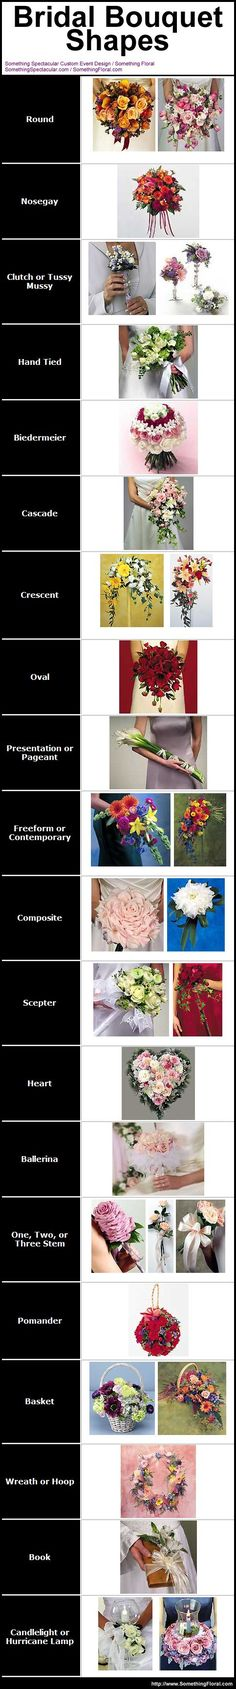 Even Better than the other one I pinned. This one has color pix.  A helpful reference for brides. A pictorial list of bridal bouquet and bridesmaid bouquet shapes.